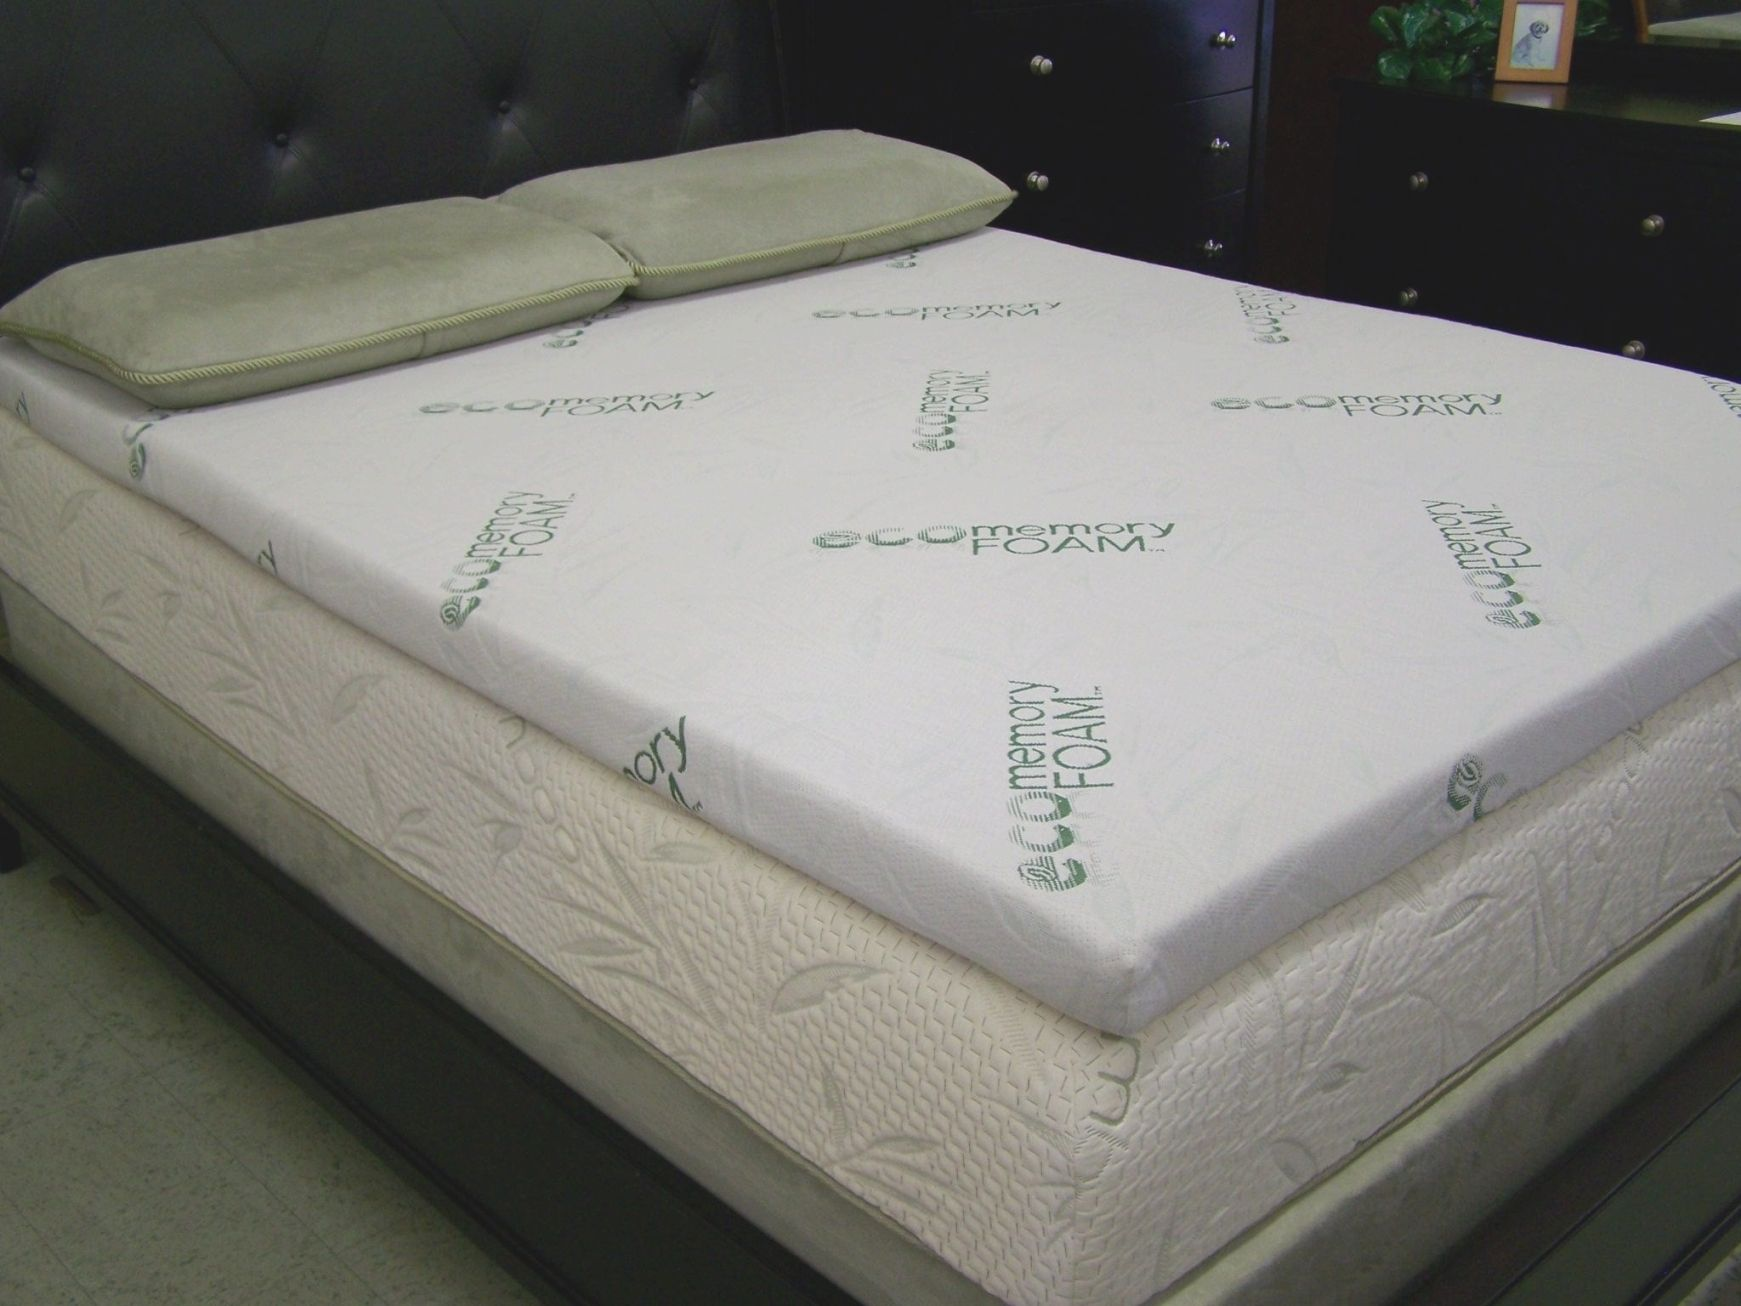 Mattress Topper To Make Bed Firmer Tempurpedic Mattress